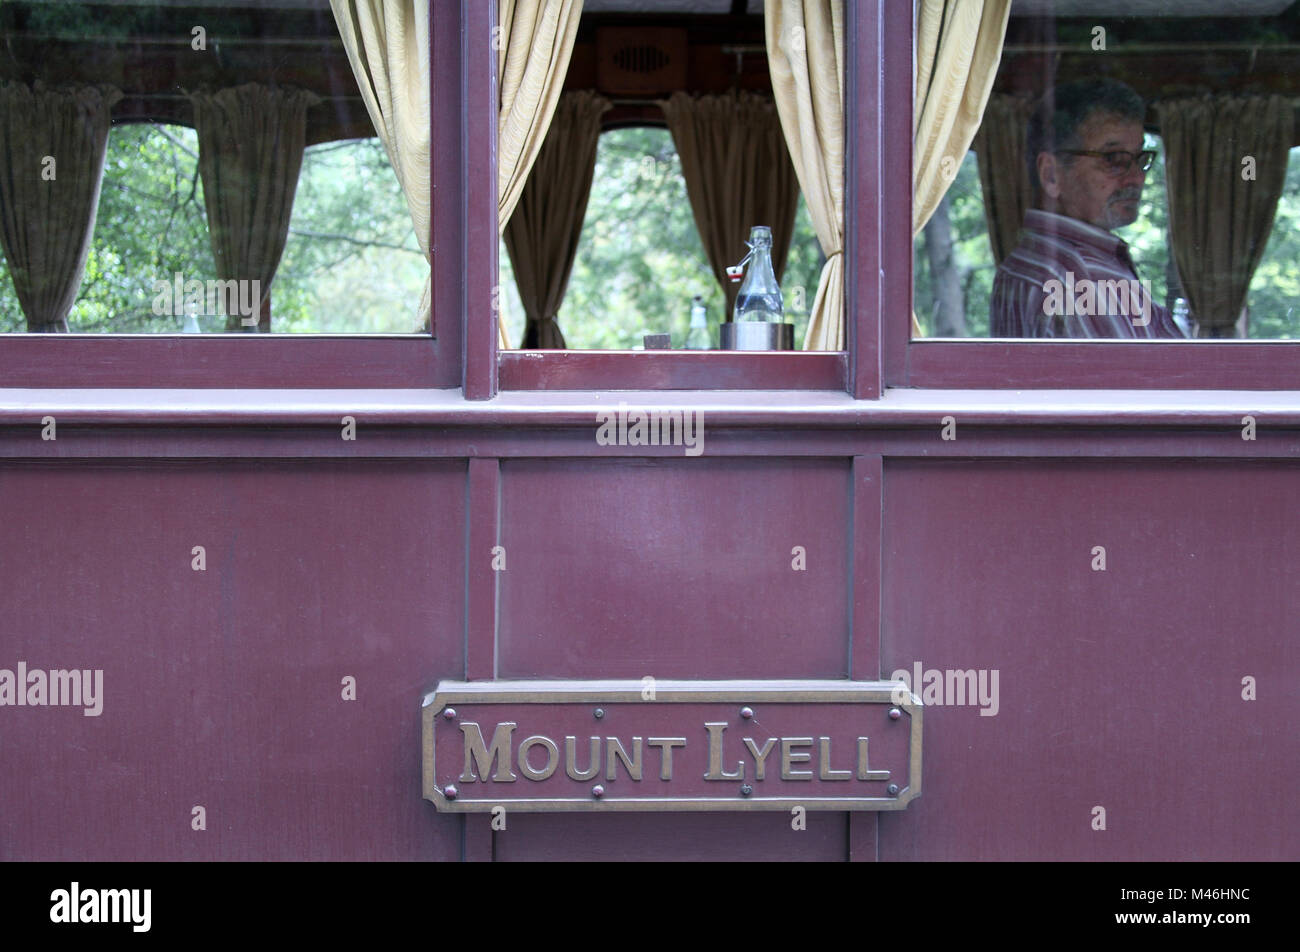 Dining carriage on the Puffing Billy Steam Train - Stock Image